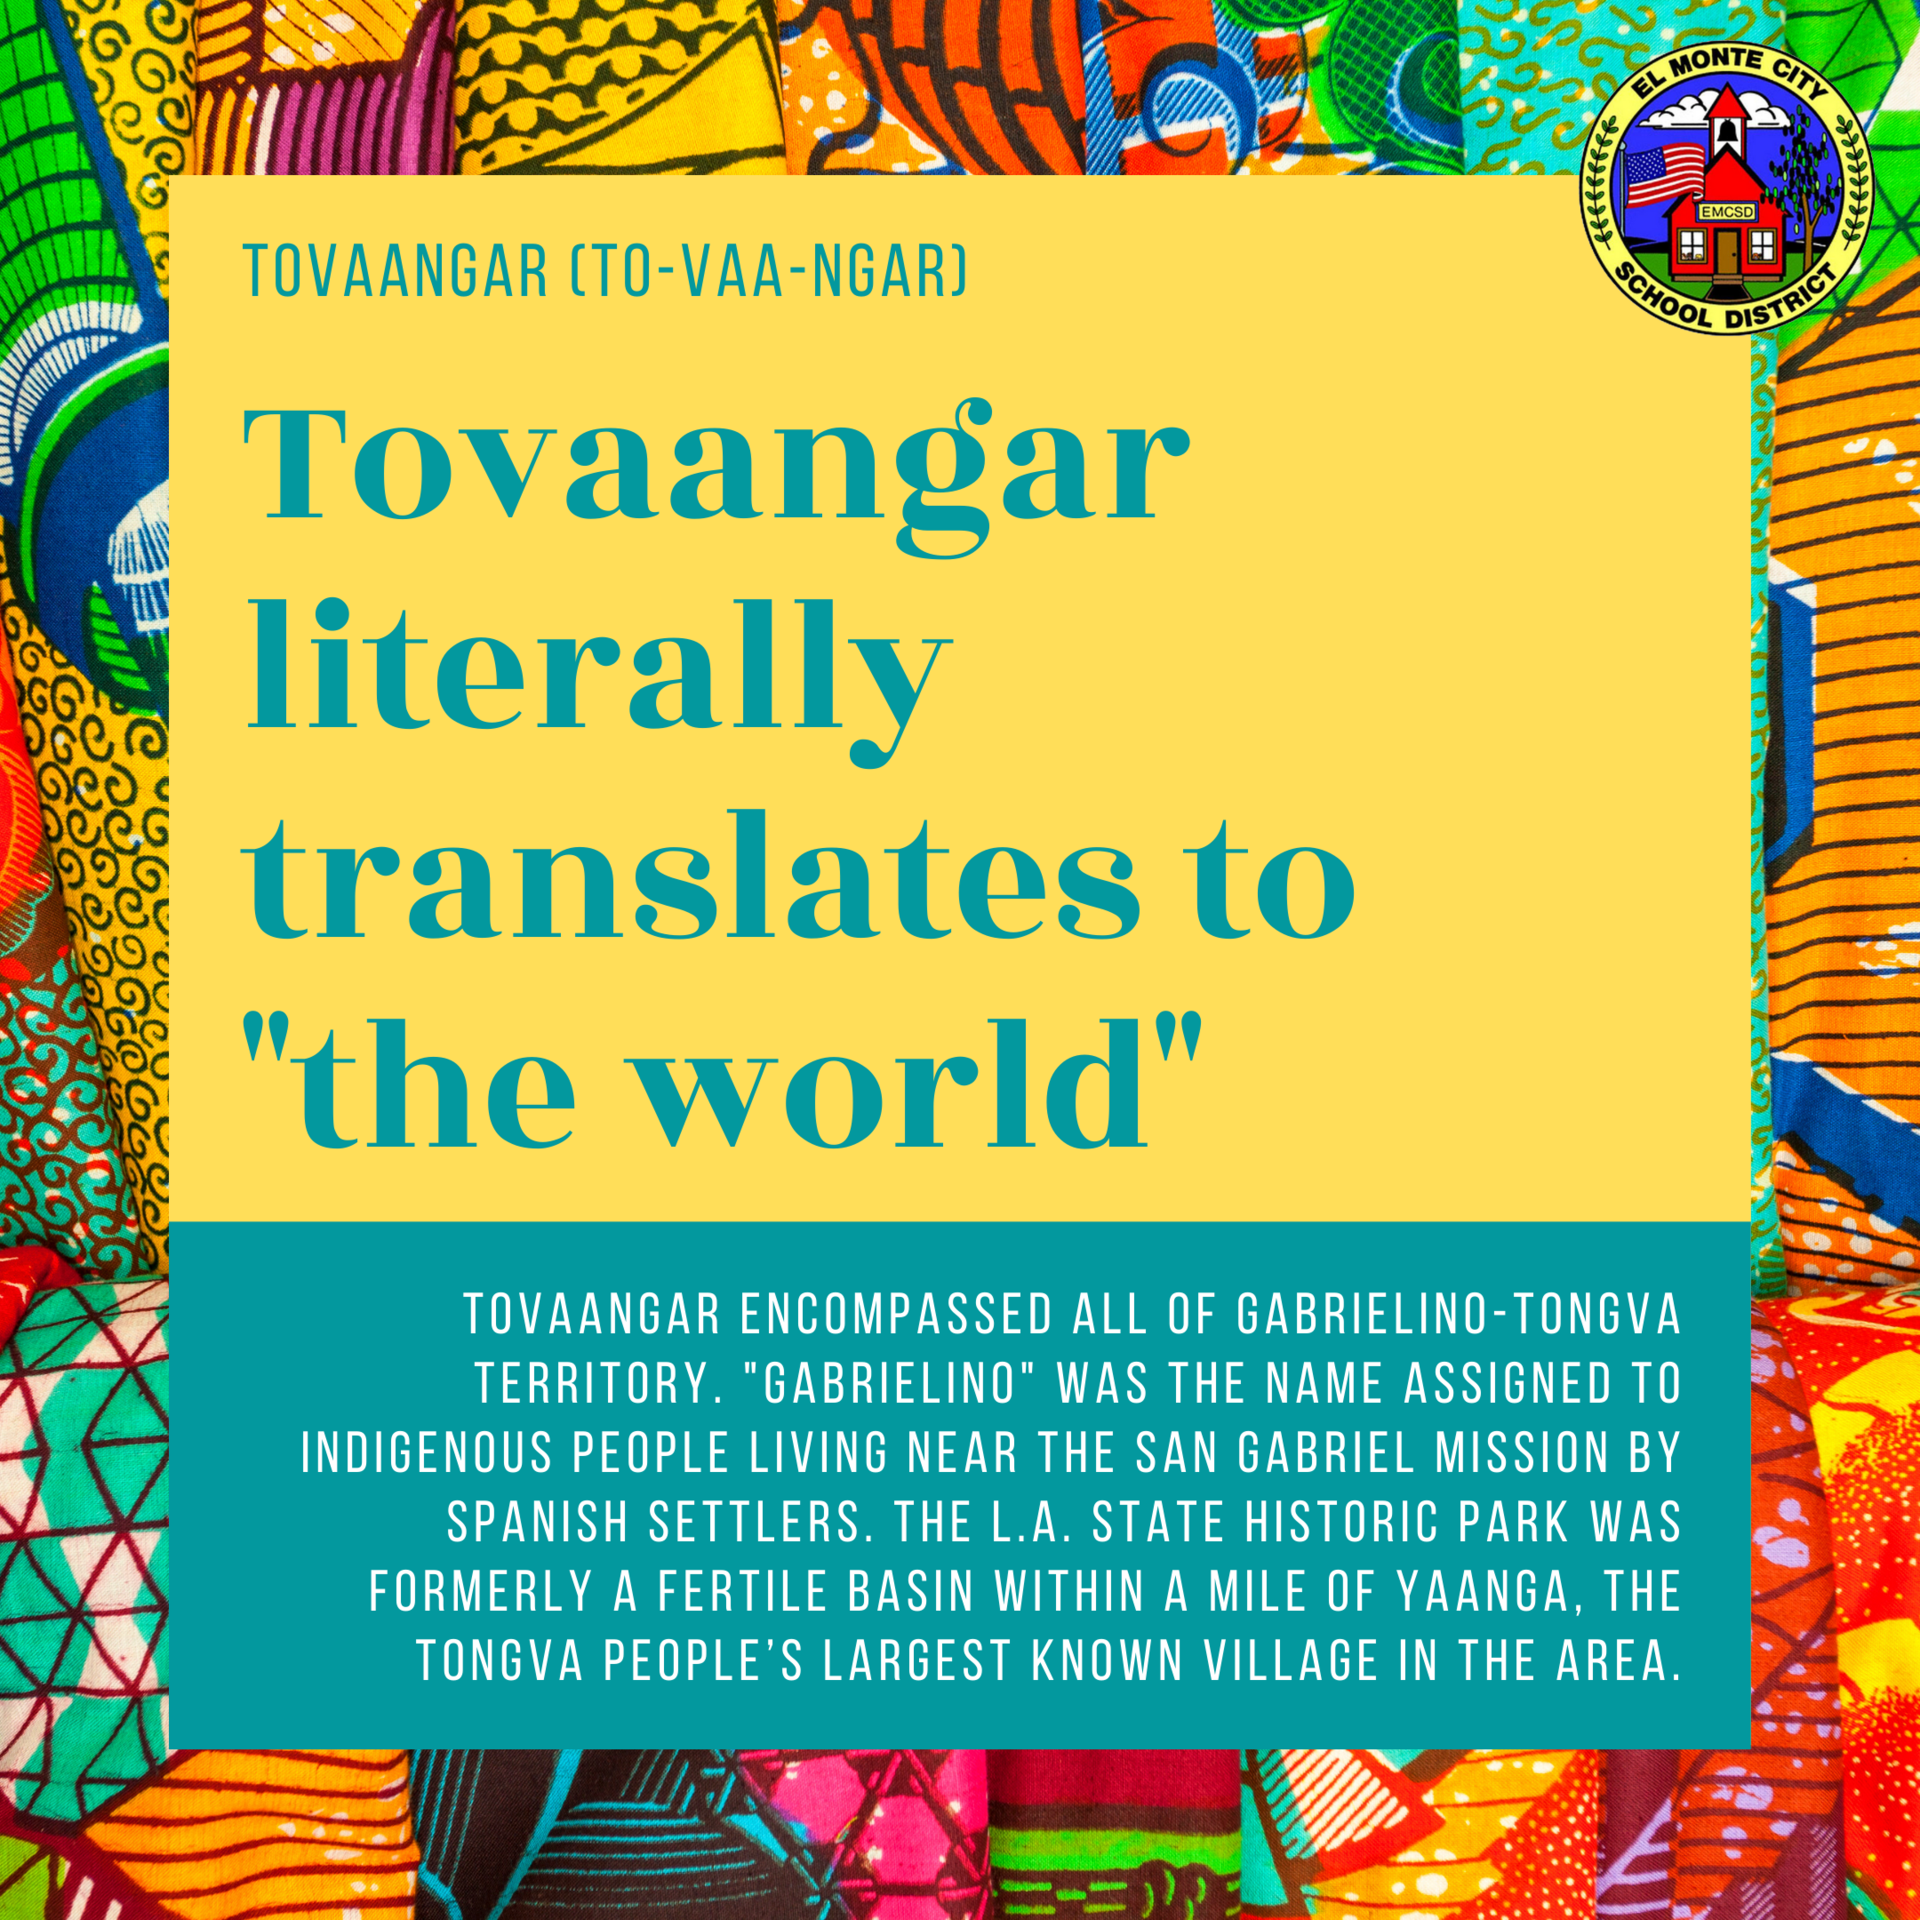 Graphic that reads: Tovaangar literally translates to 'the world'. Tovaangar encompassed all of gabrielino-tongva territory. 'Gabrielino' was the name assigned to indigenous people living near the san gabriel mission by spanish settlers. The L.A. State Historic Park was formerly a fertile basin within a mile of Yaanga, the Tongva people's largest known village in the area.